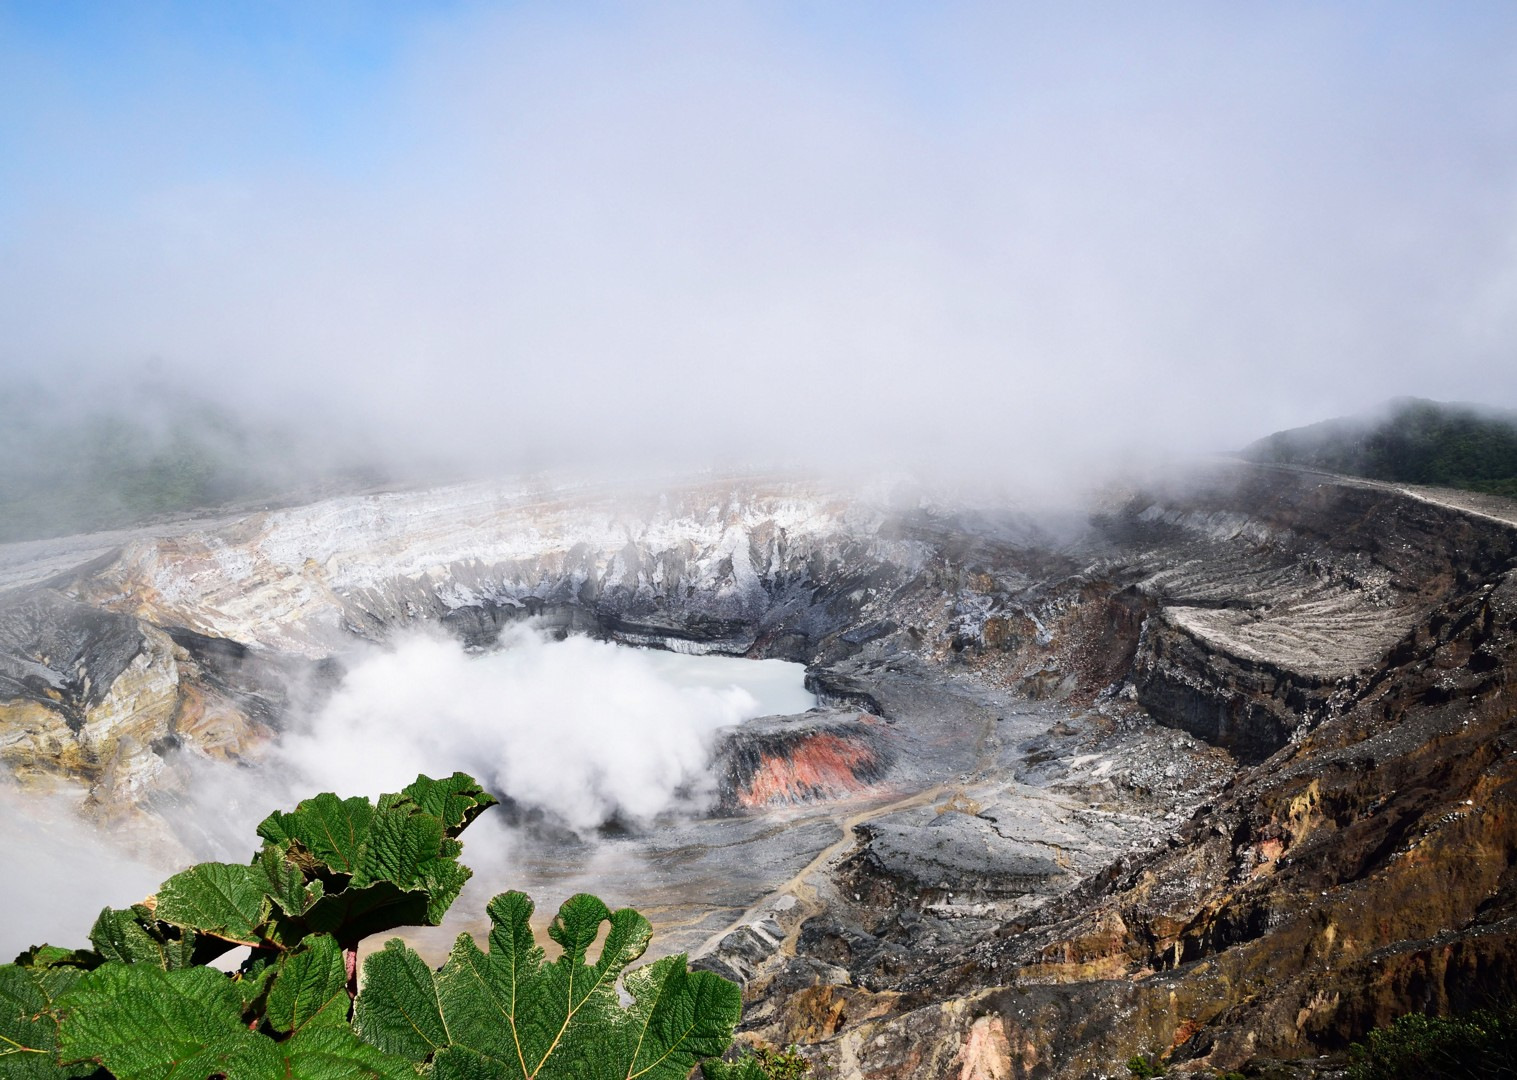 volcano-valleys-guided-family-cycling-holiday.jpg - Costa Rica - Volcanoes and Valleys - Guided Family Cycling Holiday - Family Cycling